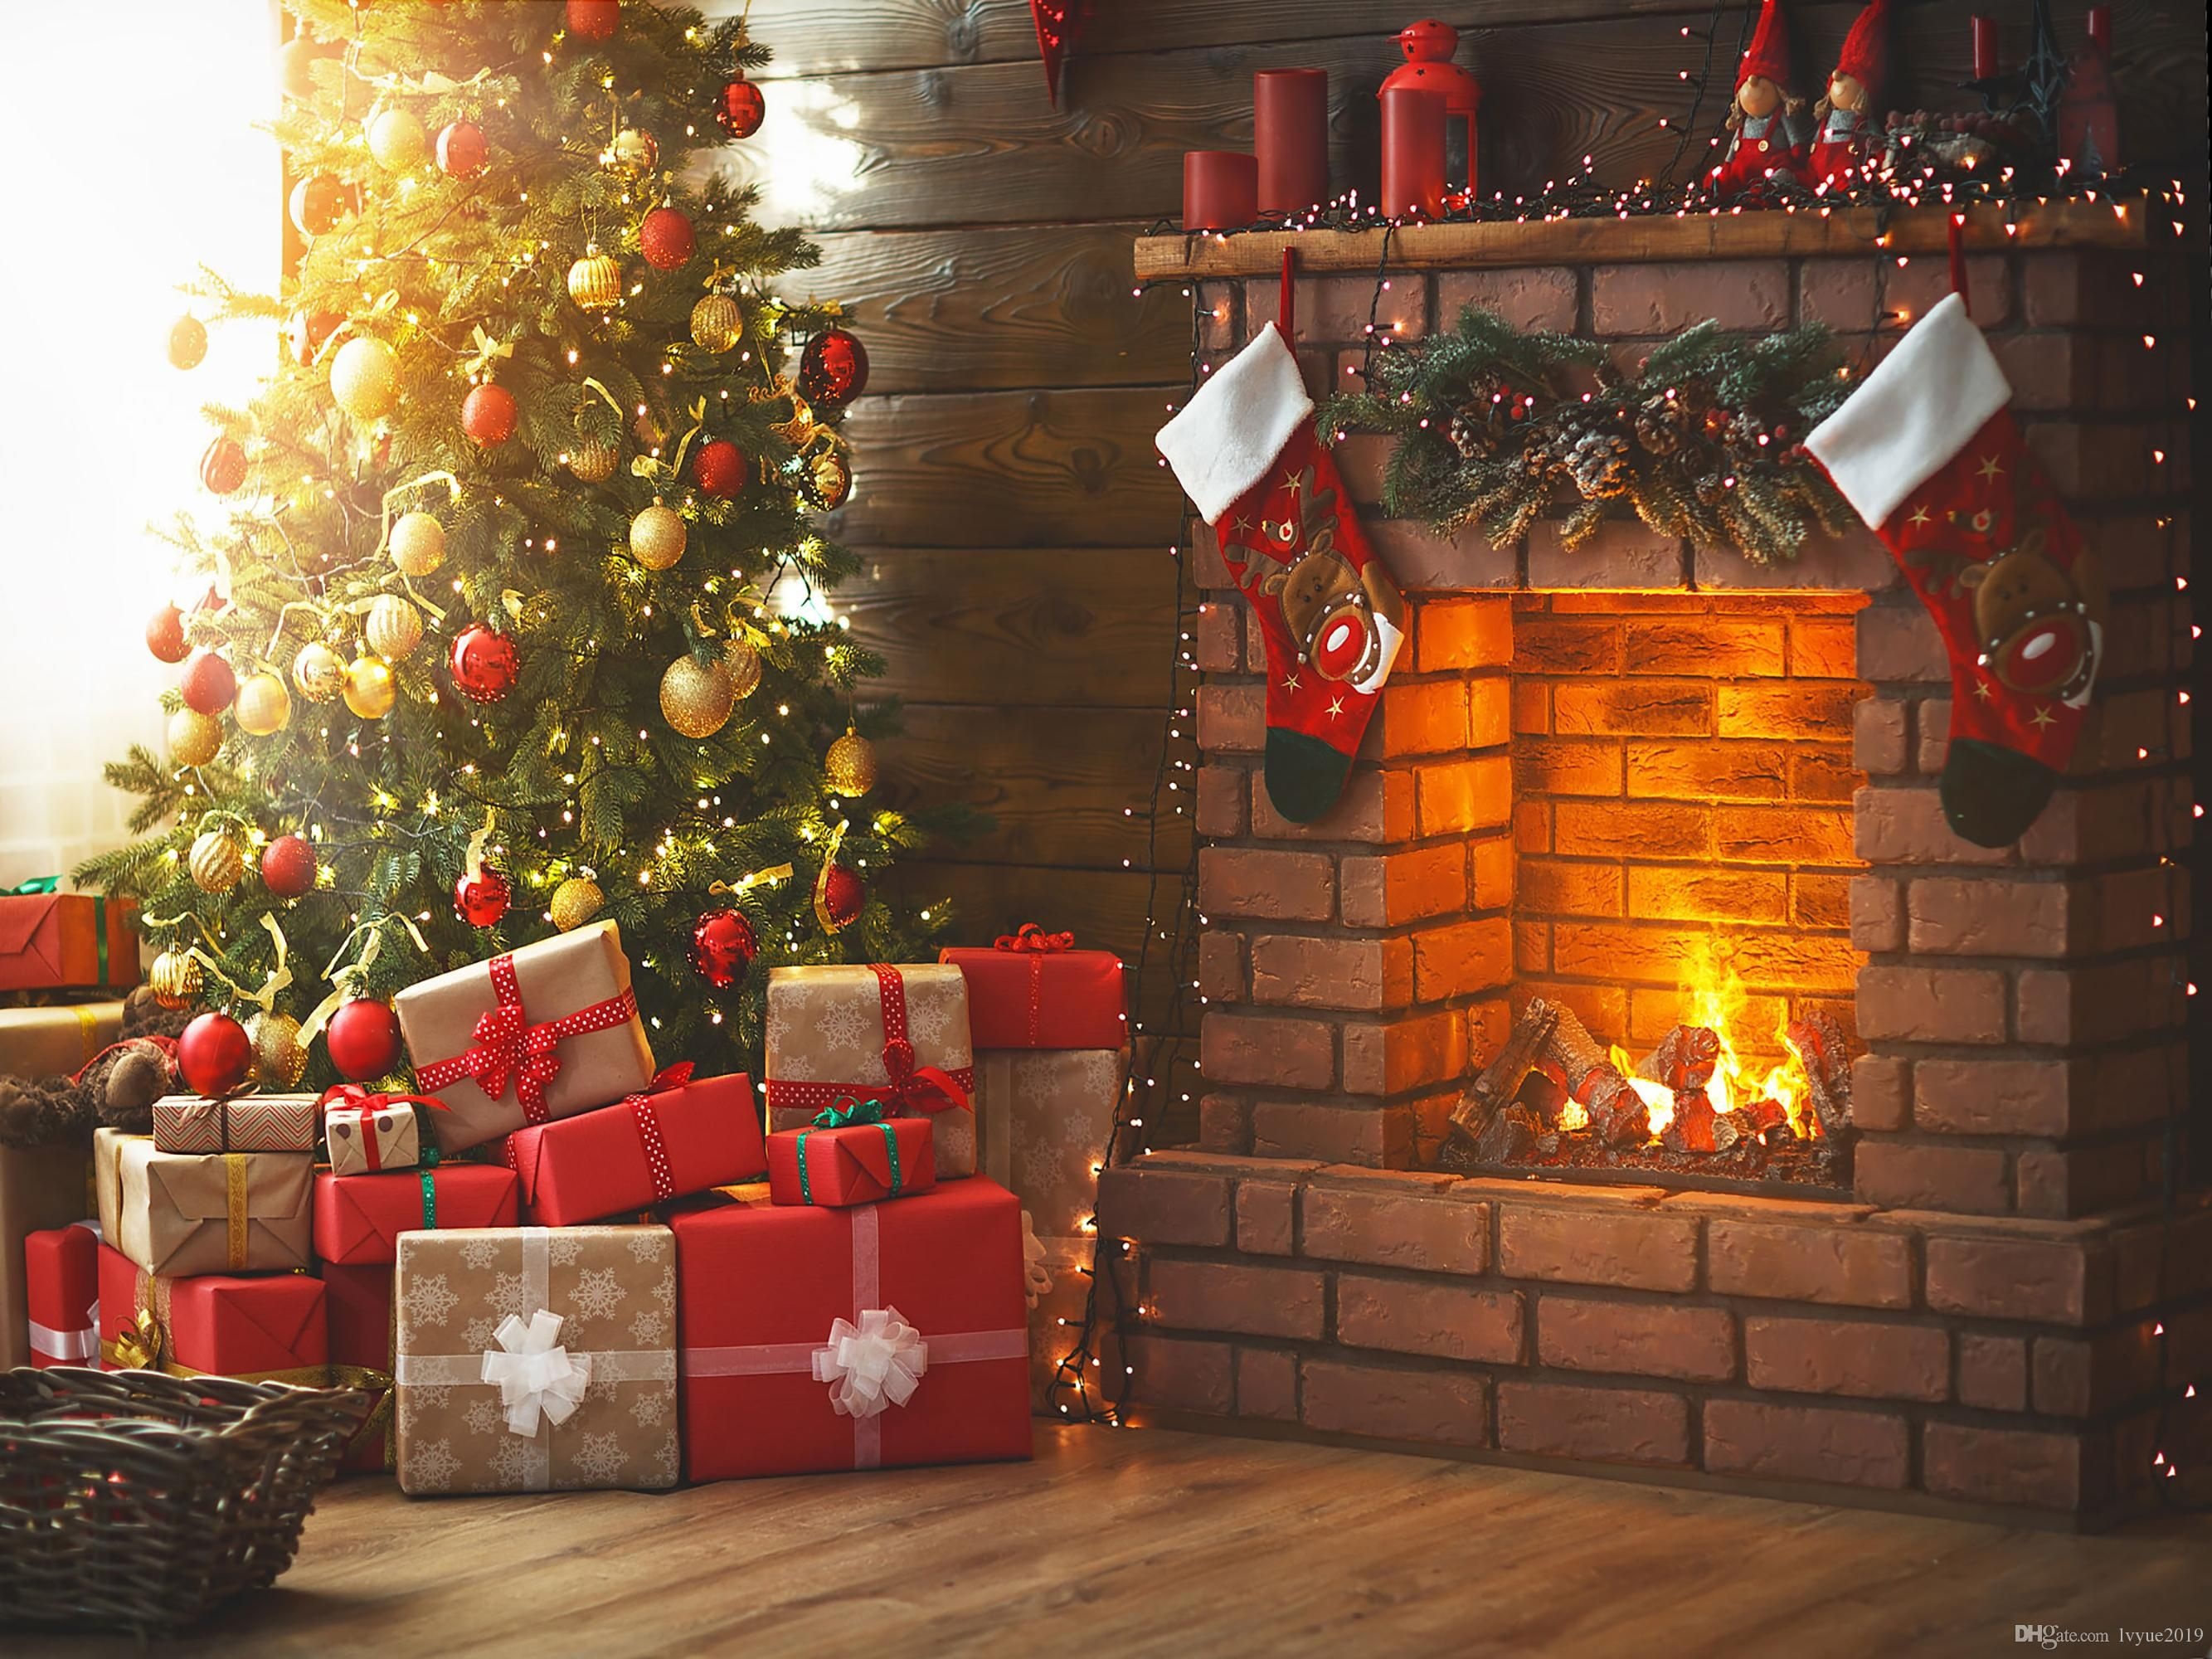 2021 Interior Christmas Tree Fireplace Gifts Vinyl Photography Backdrops Christmas Socks Photo Booth Backgrounds For Family Holidays Studio Pr From Lvyue2019 Christmas Photography Backdrops Christmas Tree And Fireplace Photo Backdrop Christmas